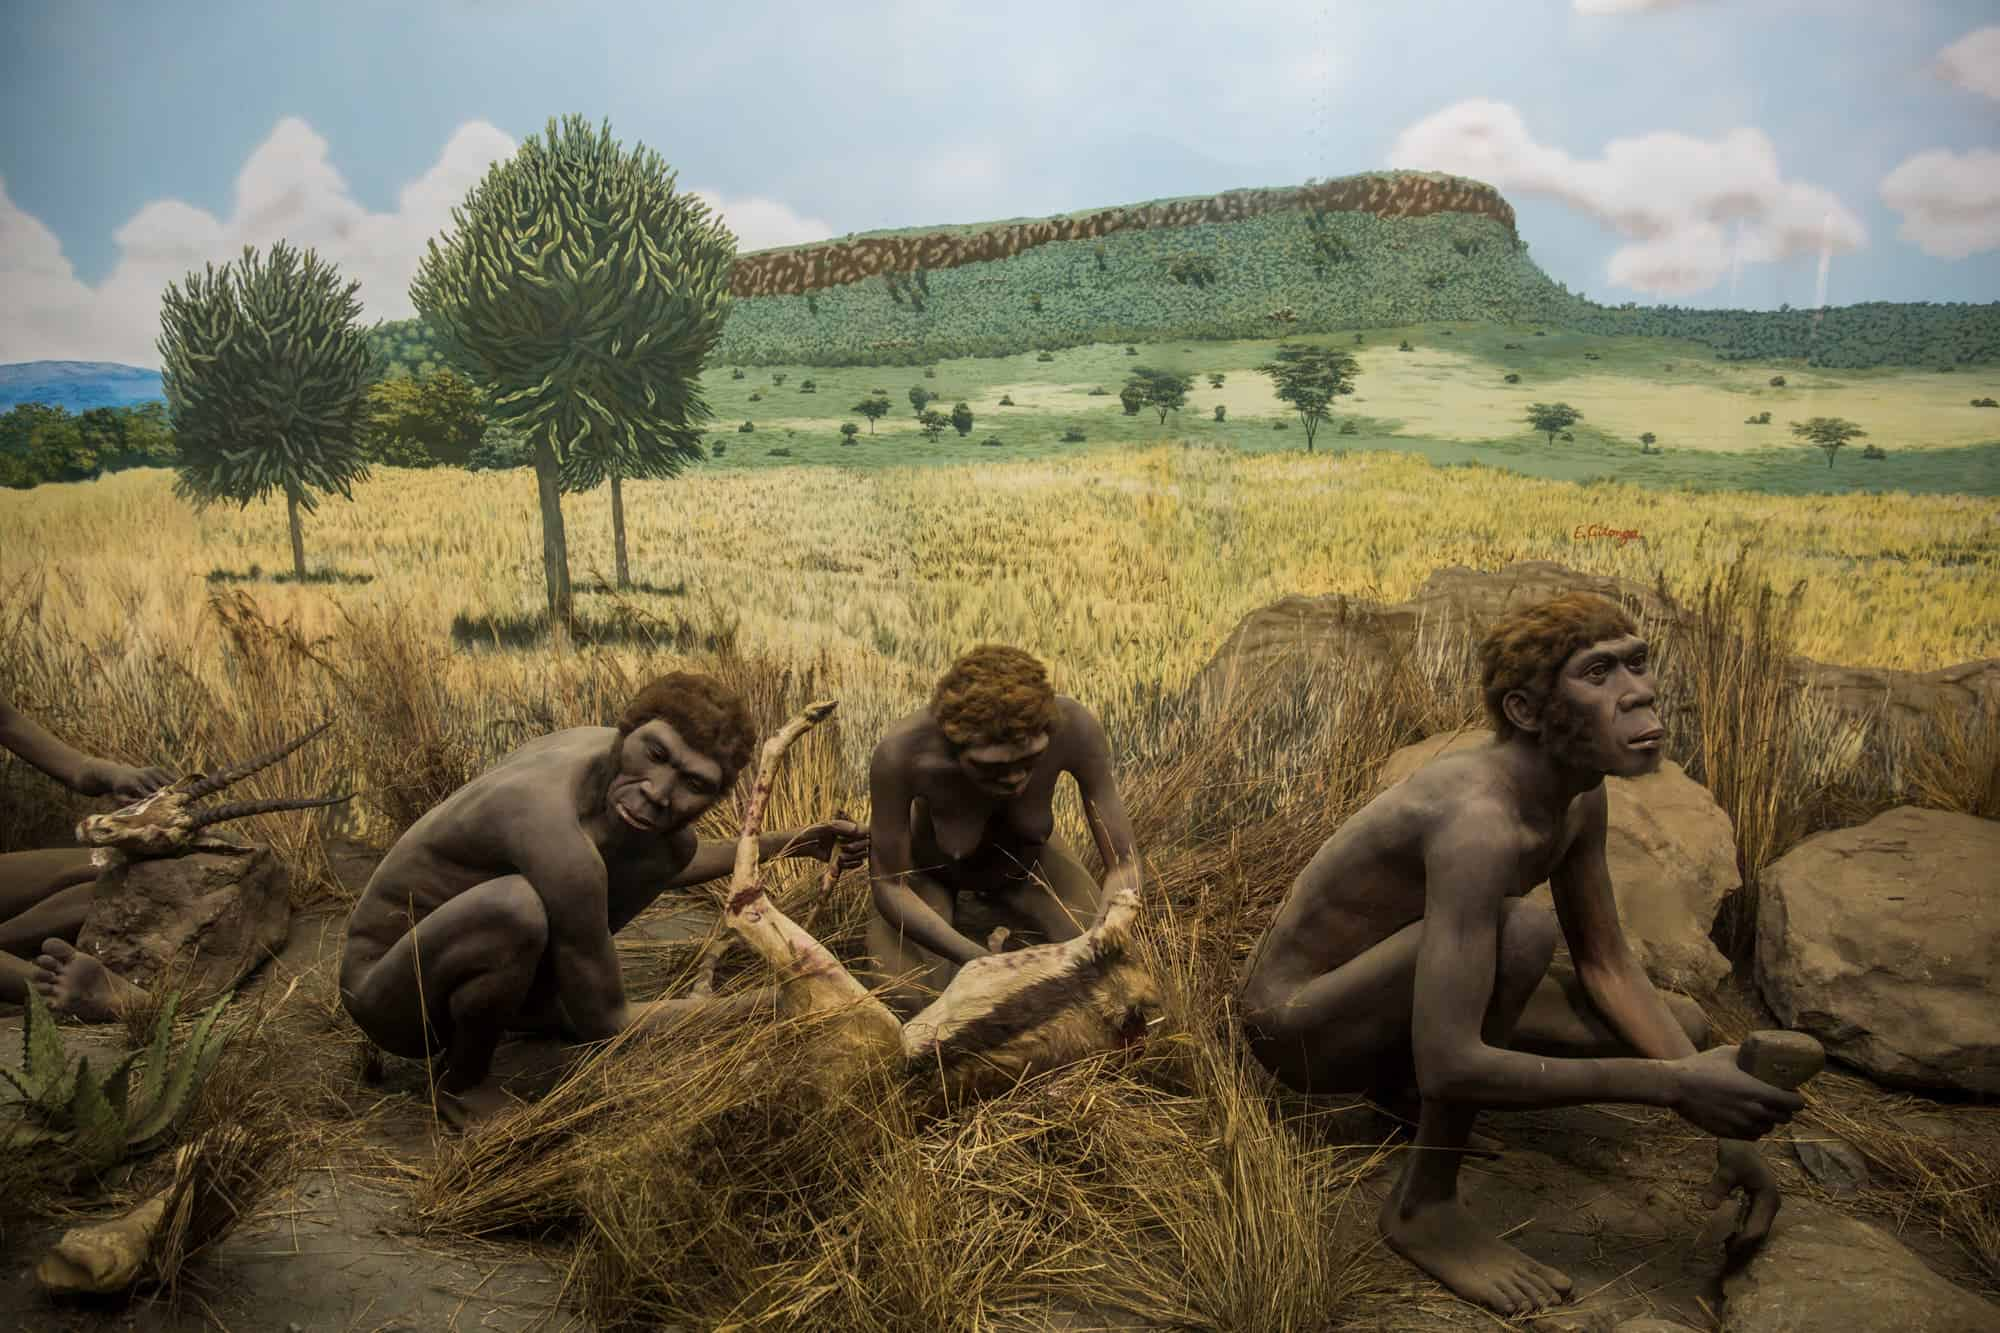 Early humans developed sophisticated tools much earlier than previously thought